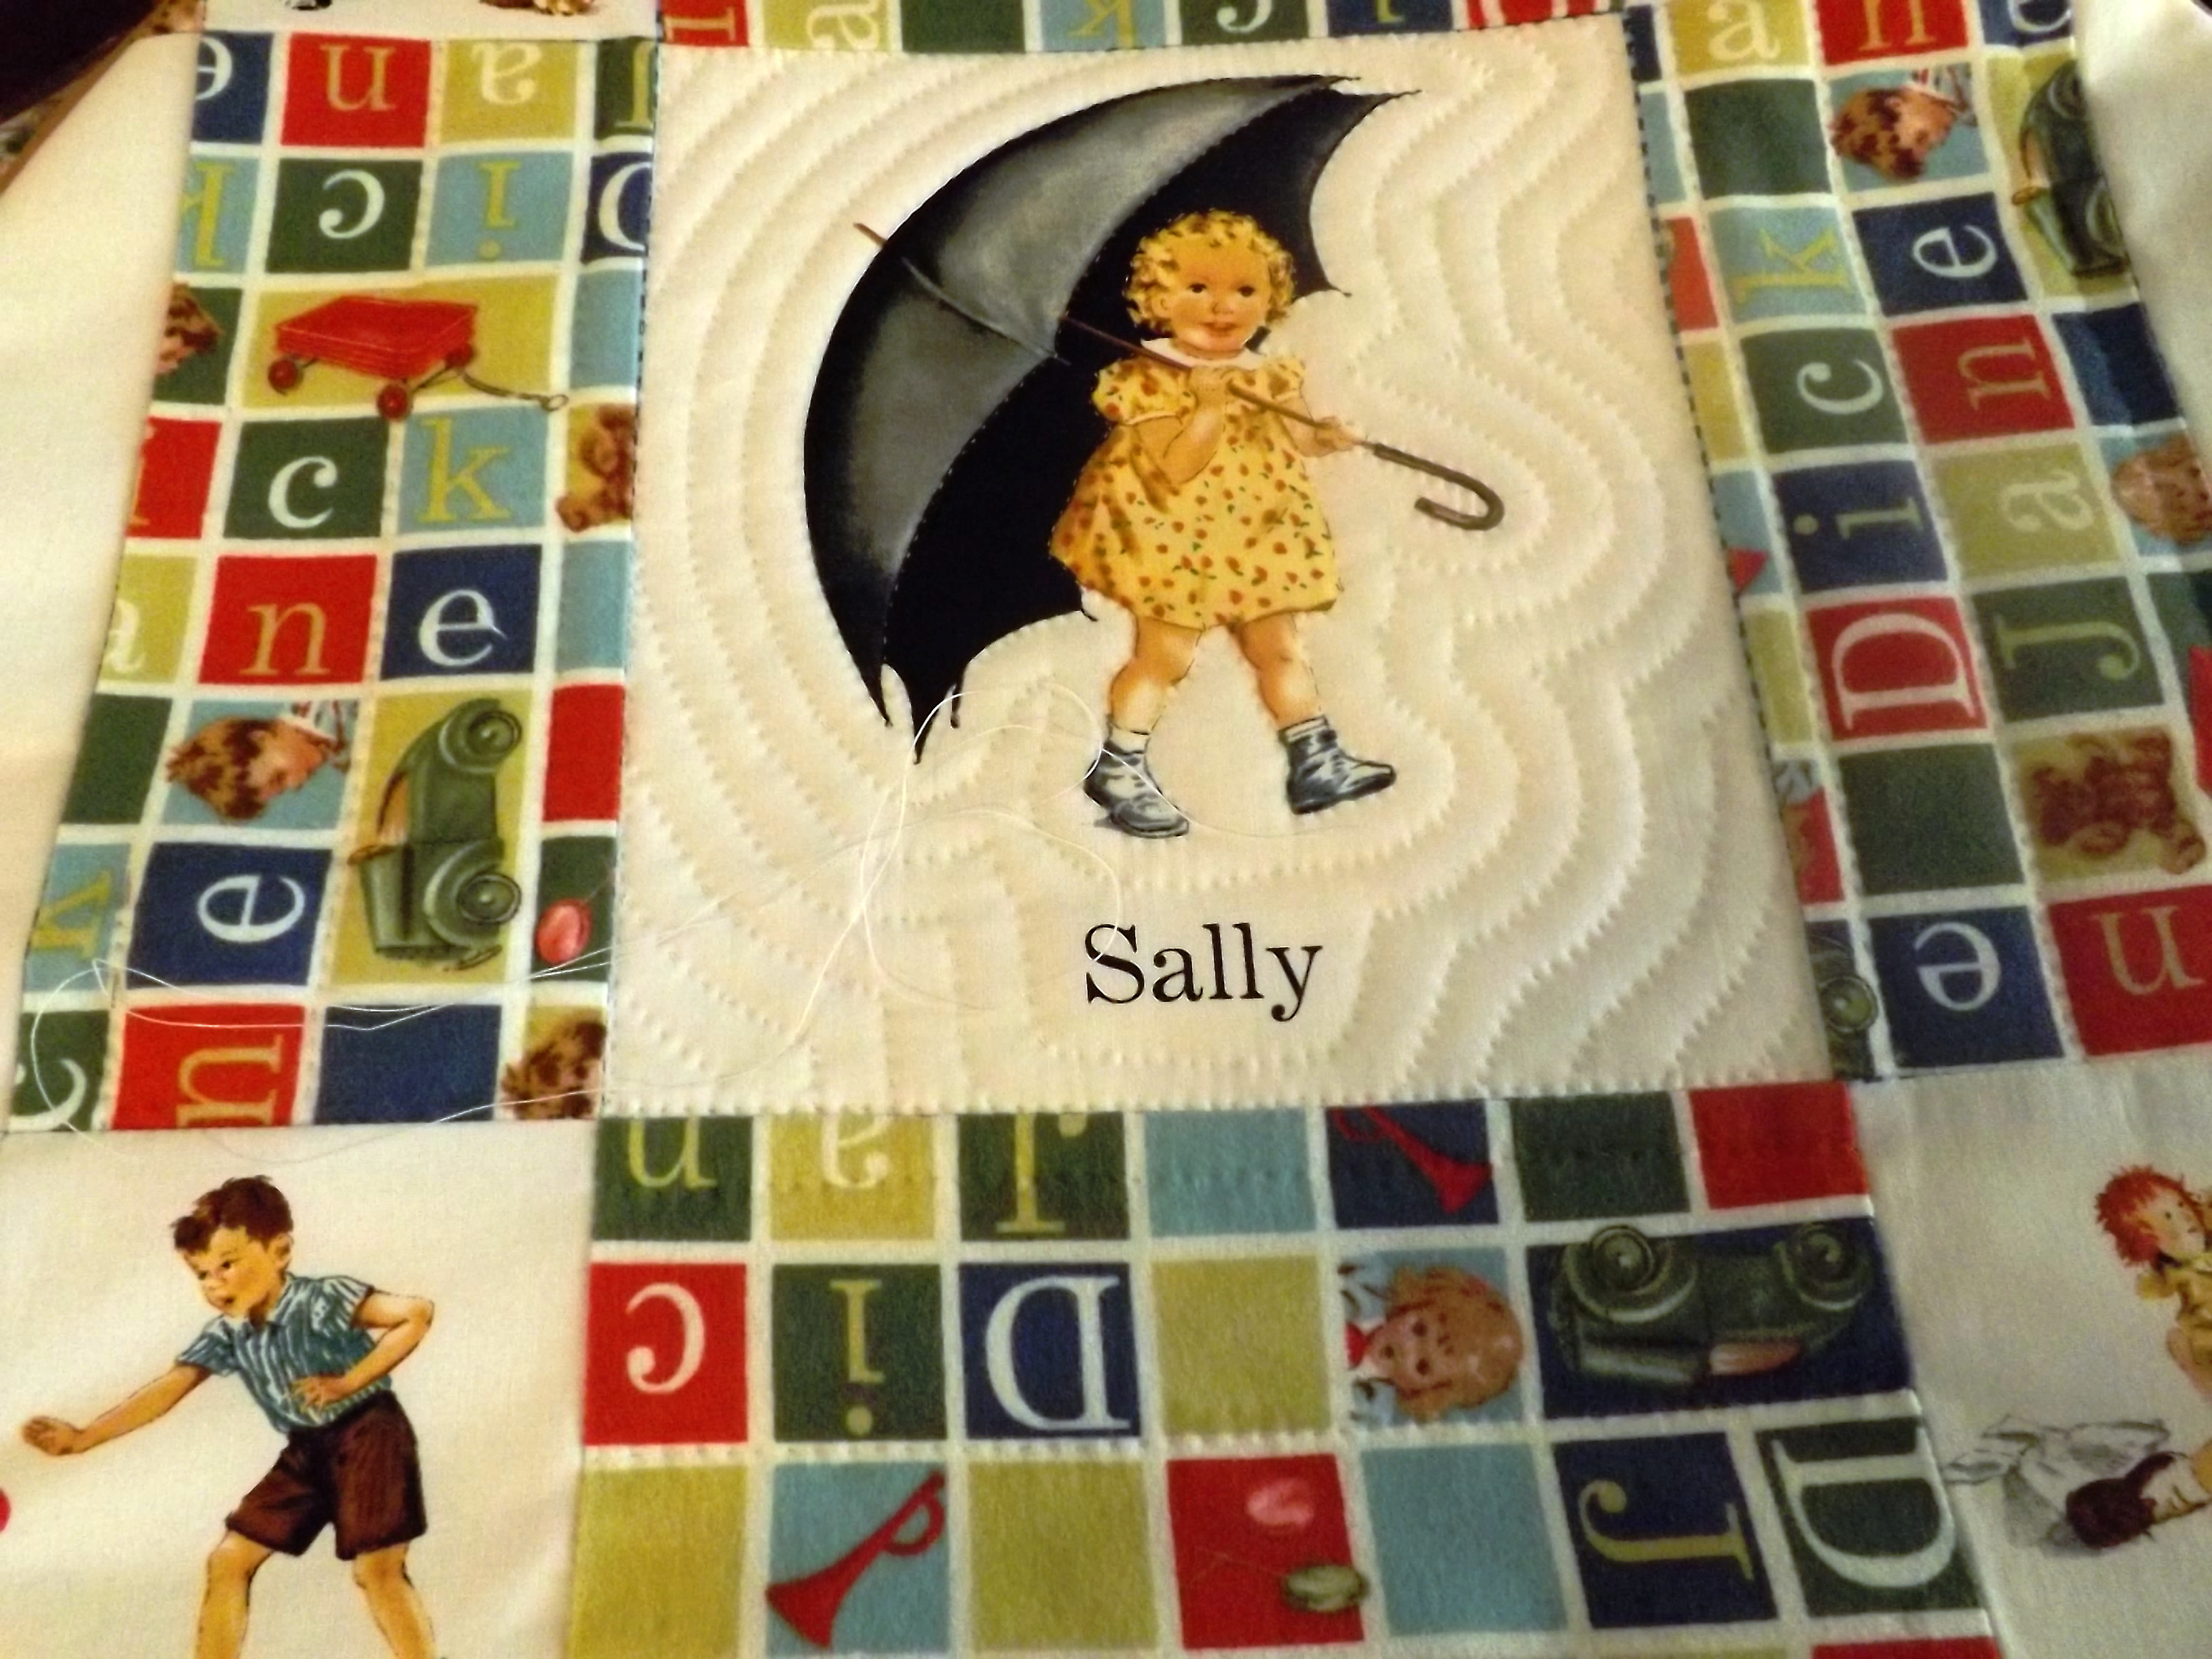 Dick and jane quilt pattern picture 941